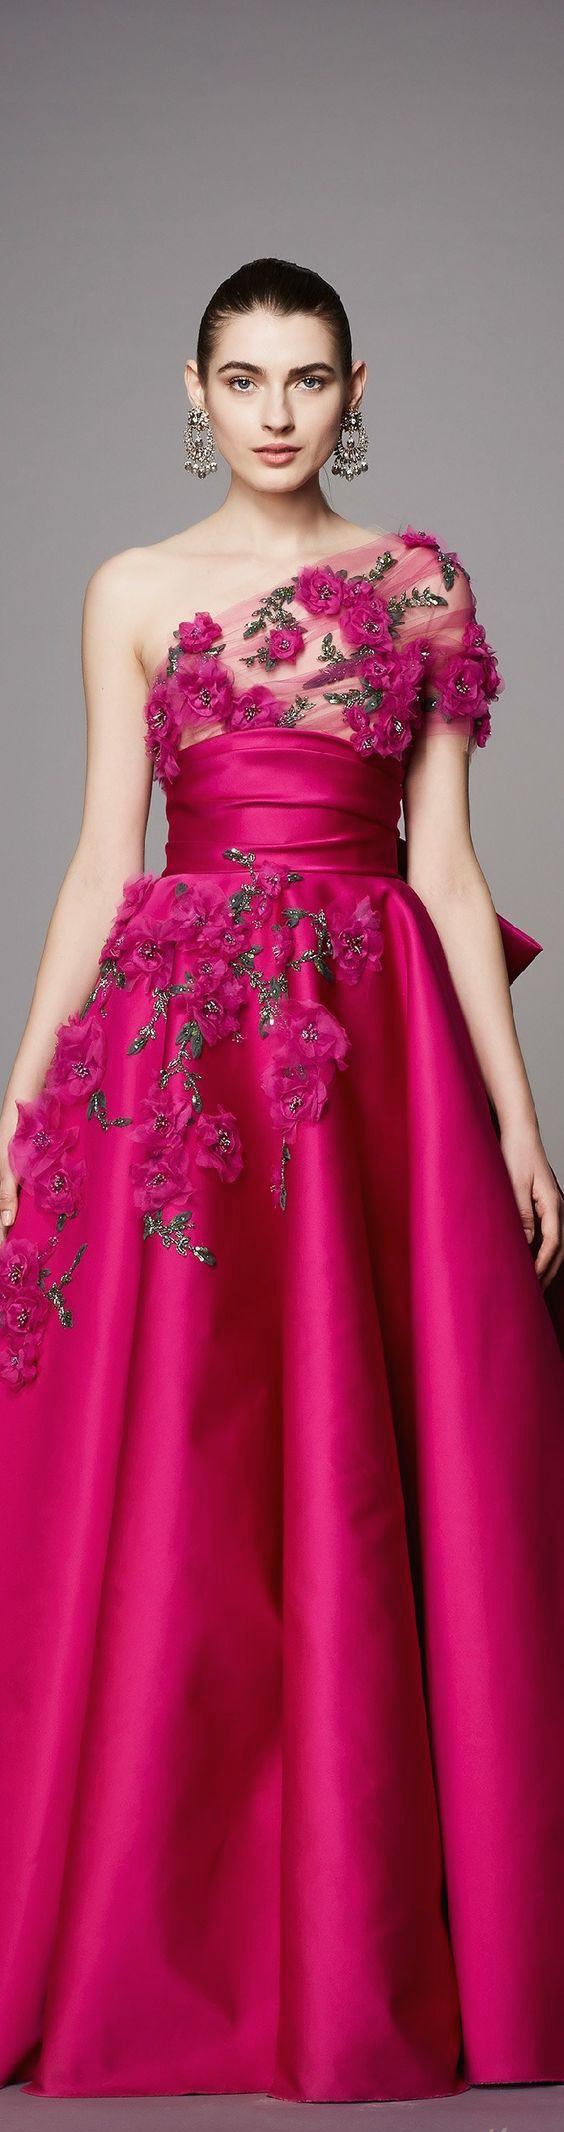 Raspberry pink and 3-D embroidered roses on this stunning evening gown from the pre-fall 2017 Marchesa collection.